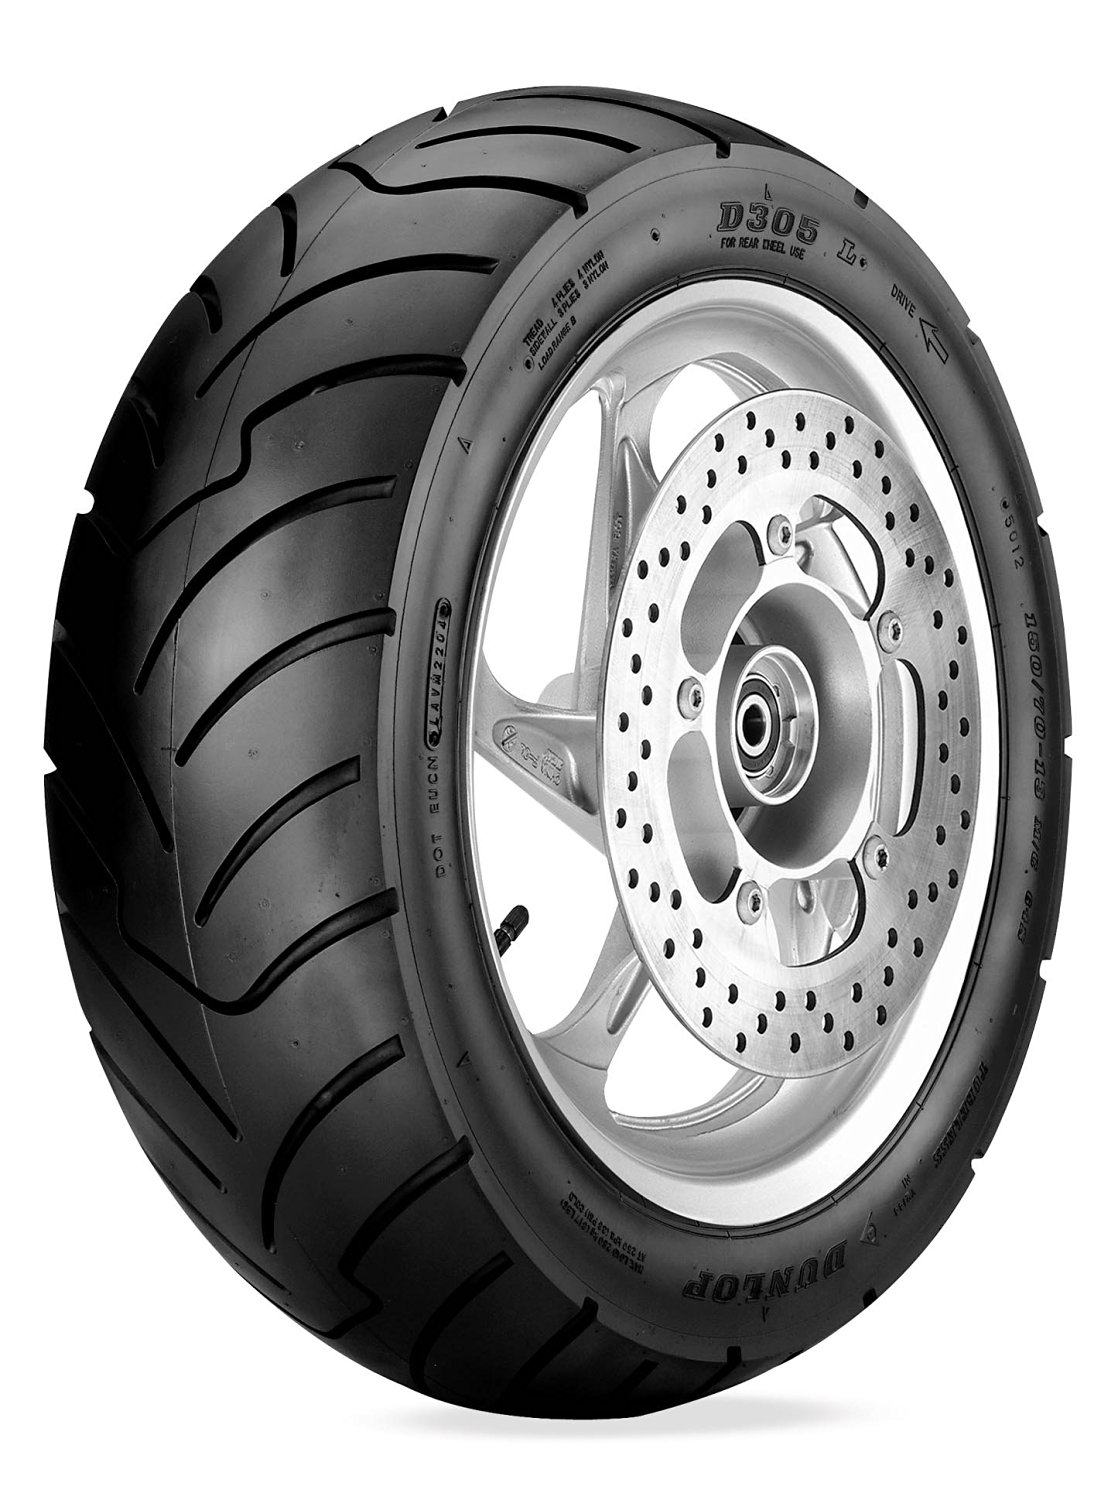 Rim Size: 14 Avon Tyres Viper Stryke AM63 Rear Tire Tire Type: Scooter//Moped 140//70-14 Tire Construction: Bias Position: Rear Tire Size: 140//70-14